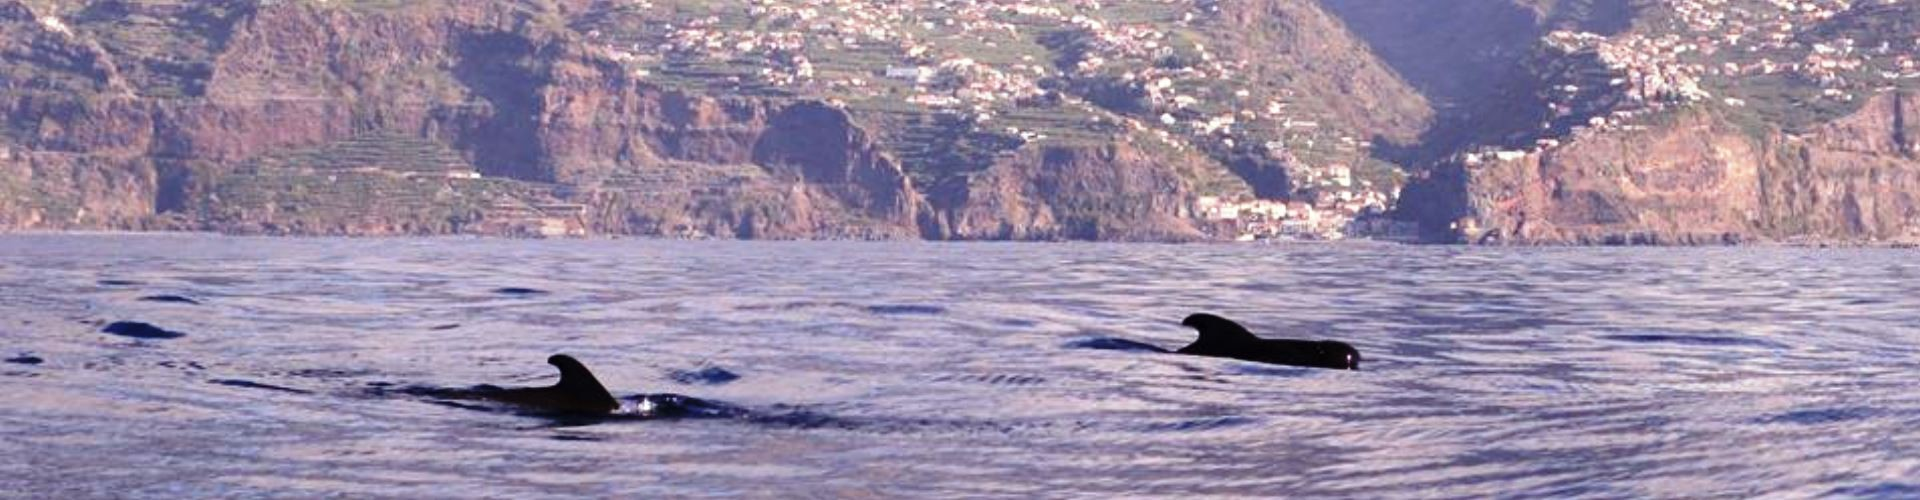 Private Calheta Dolphin Tour (4)